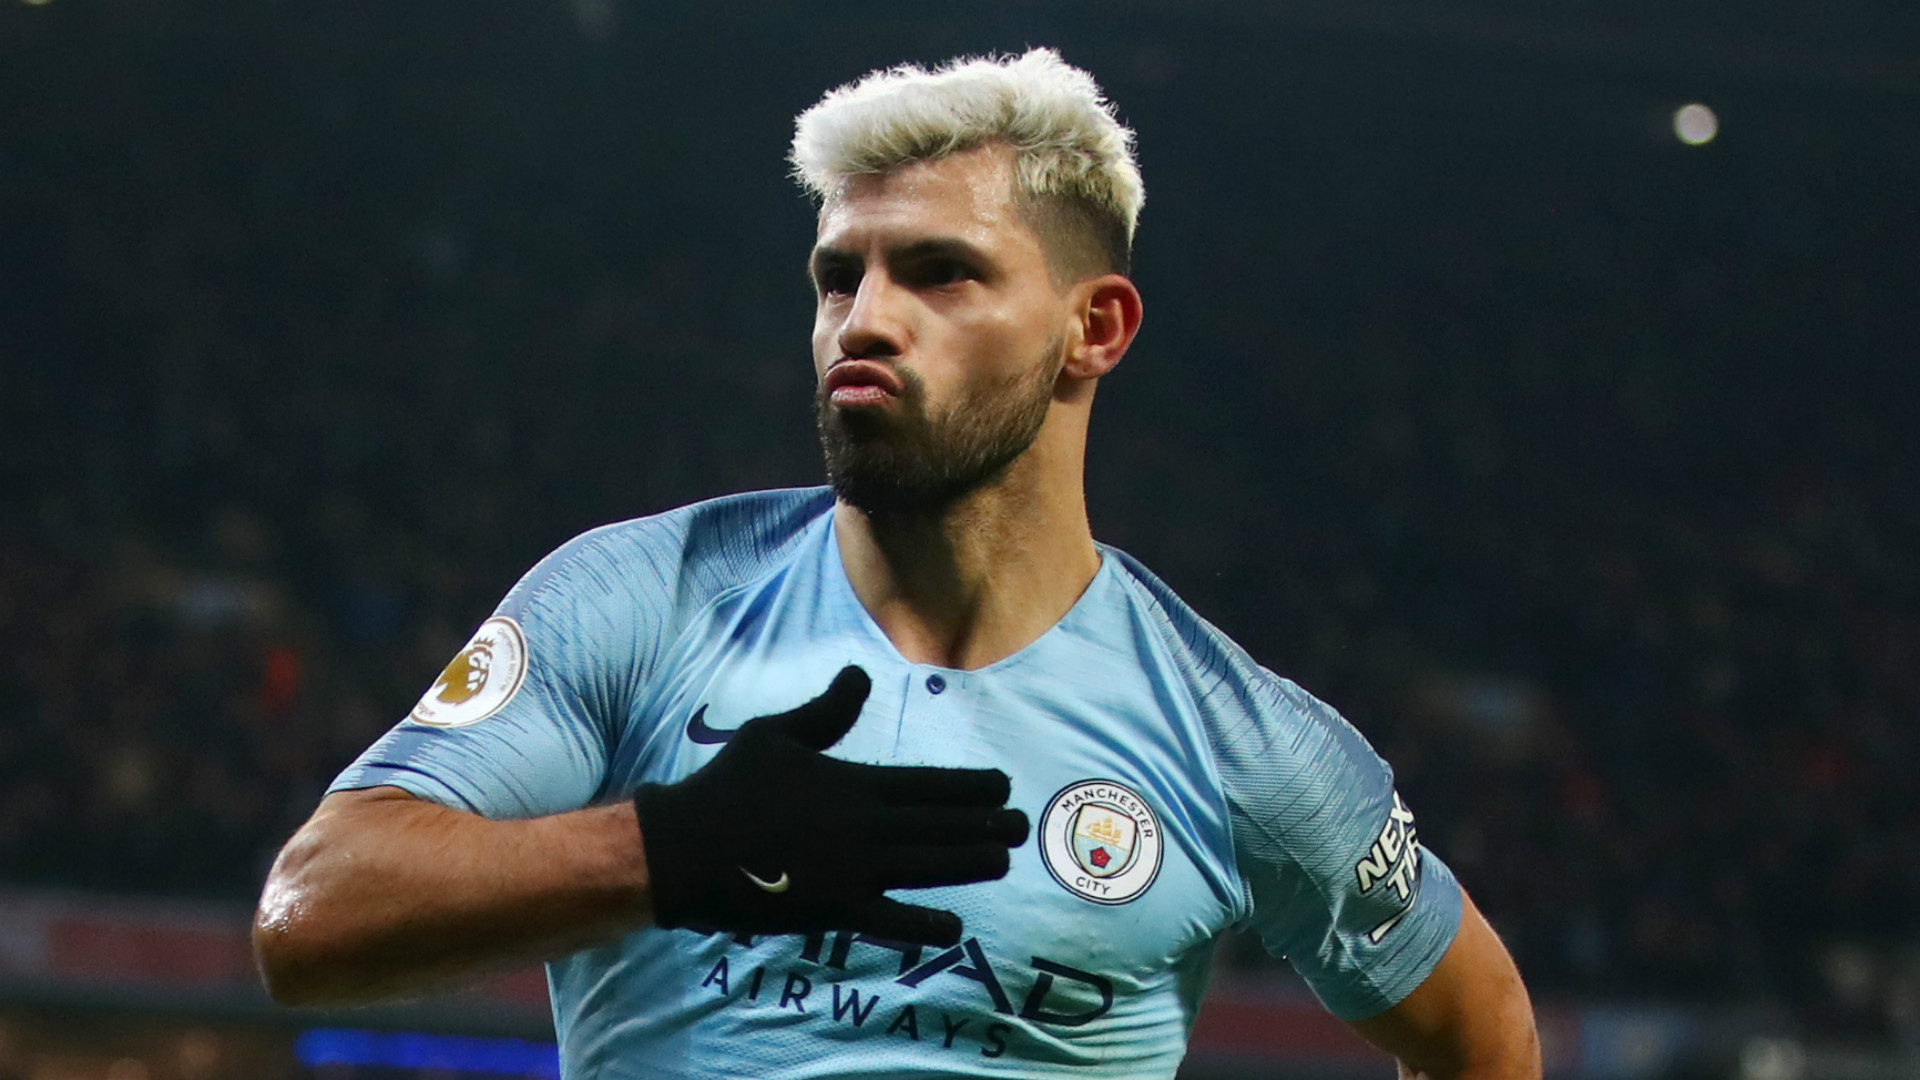 English Premier League: Manchester City must respond in tough Wolves standoff